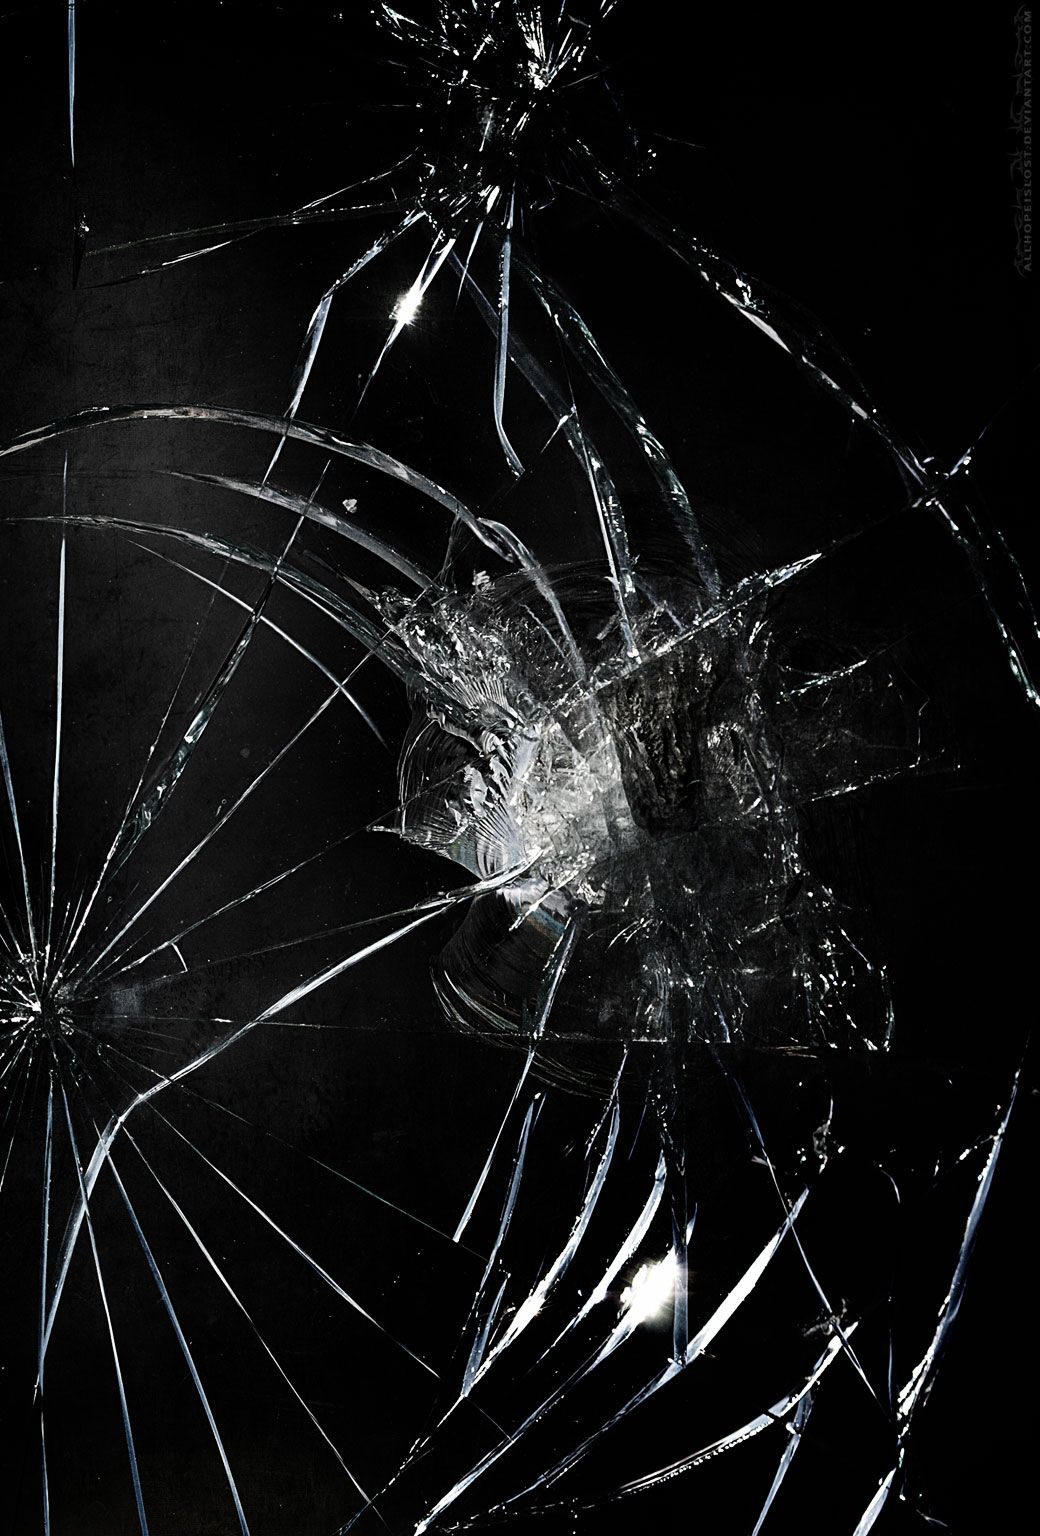 Free Cracked Screen Wallpaper Phone beautiful hd